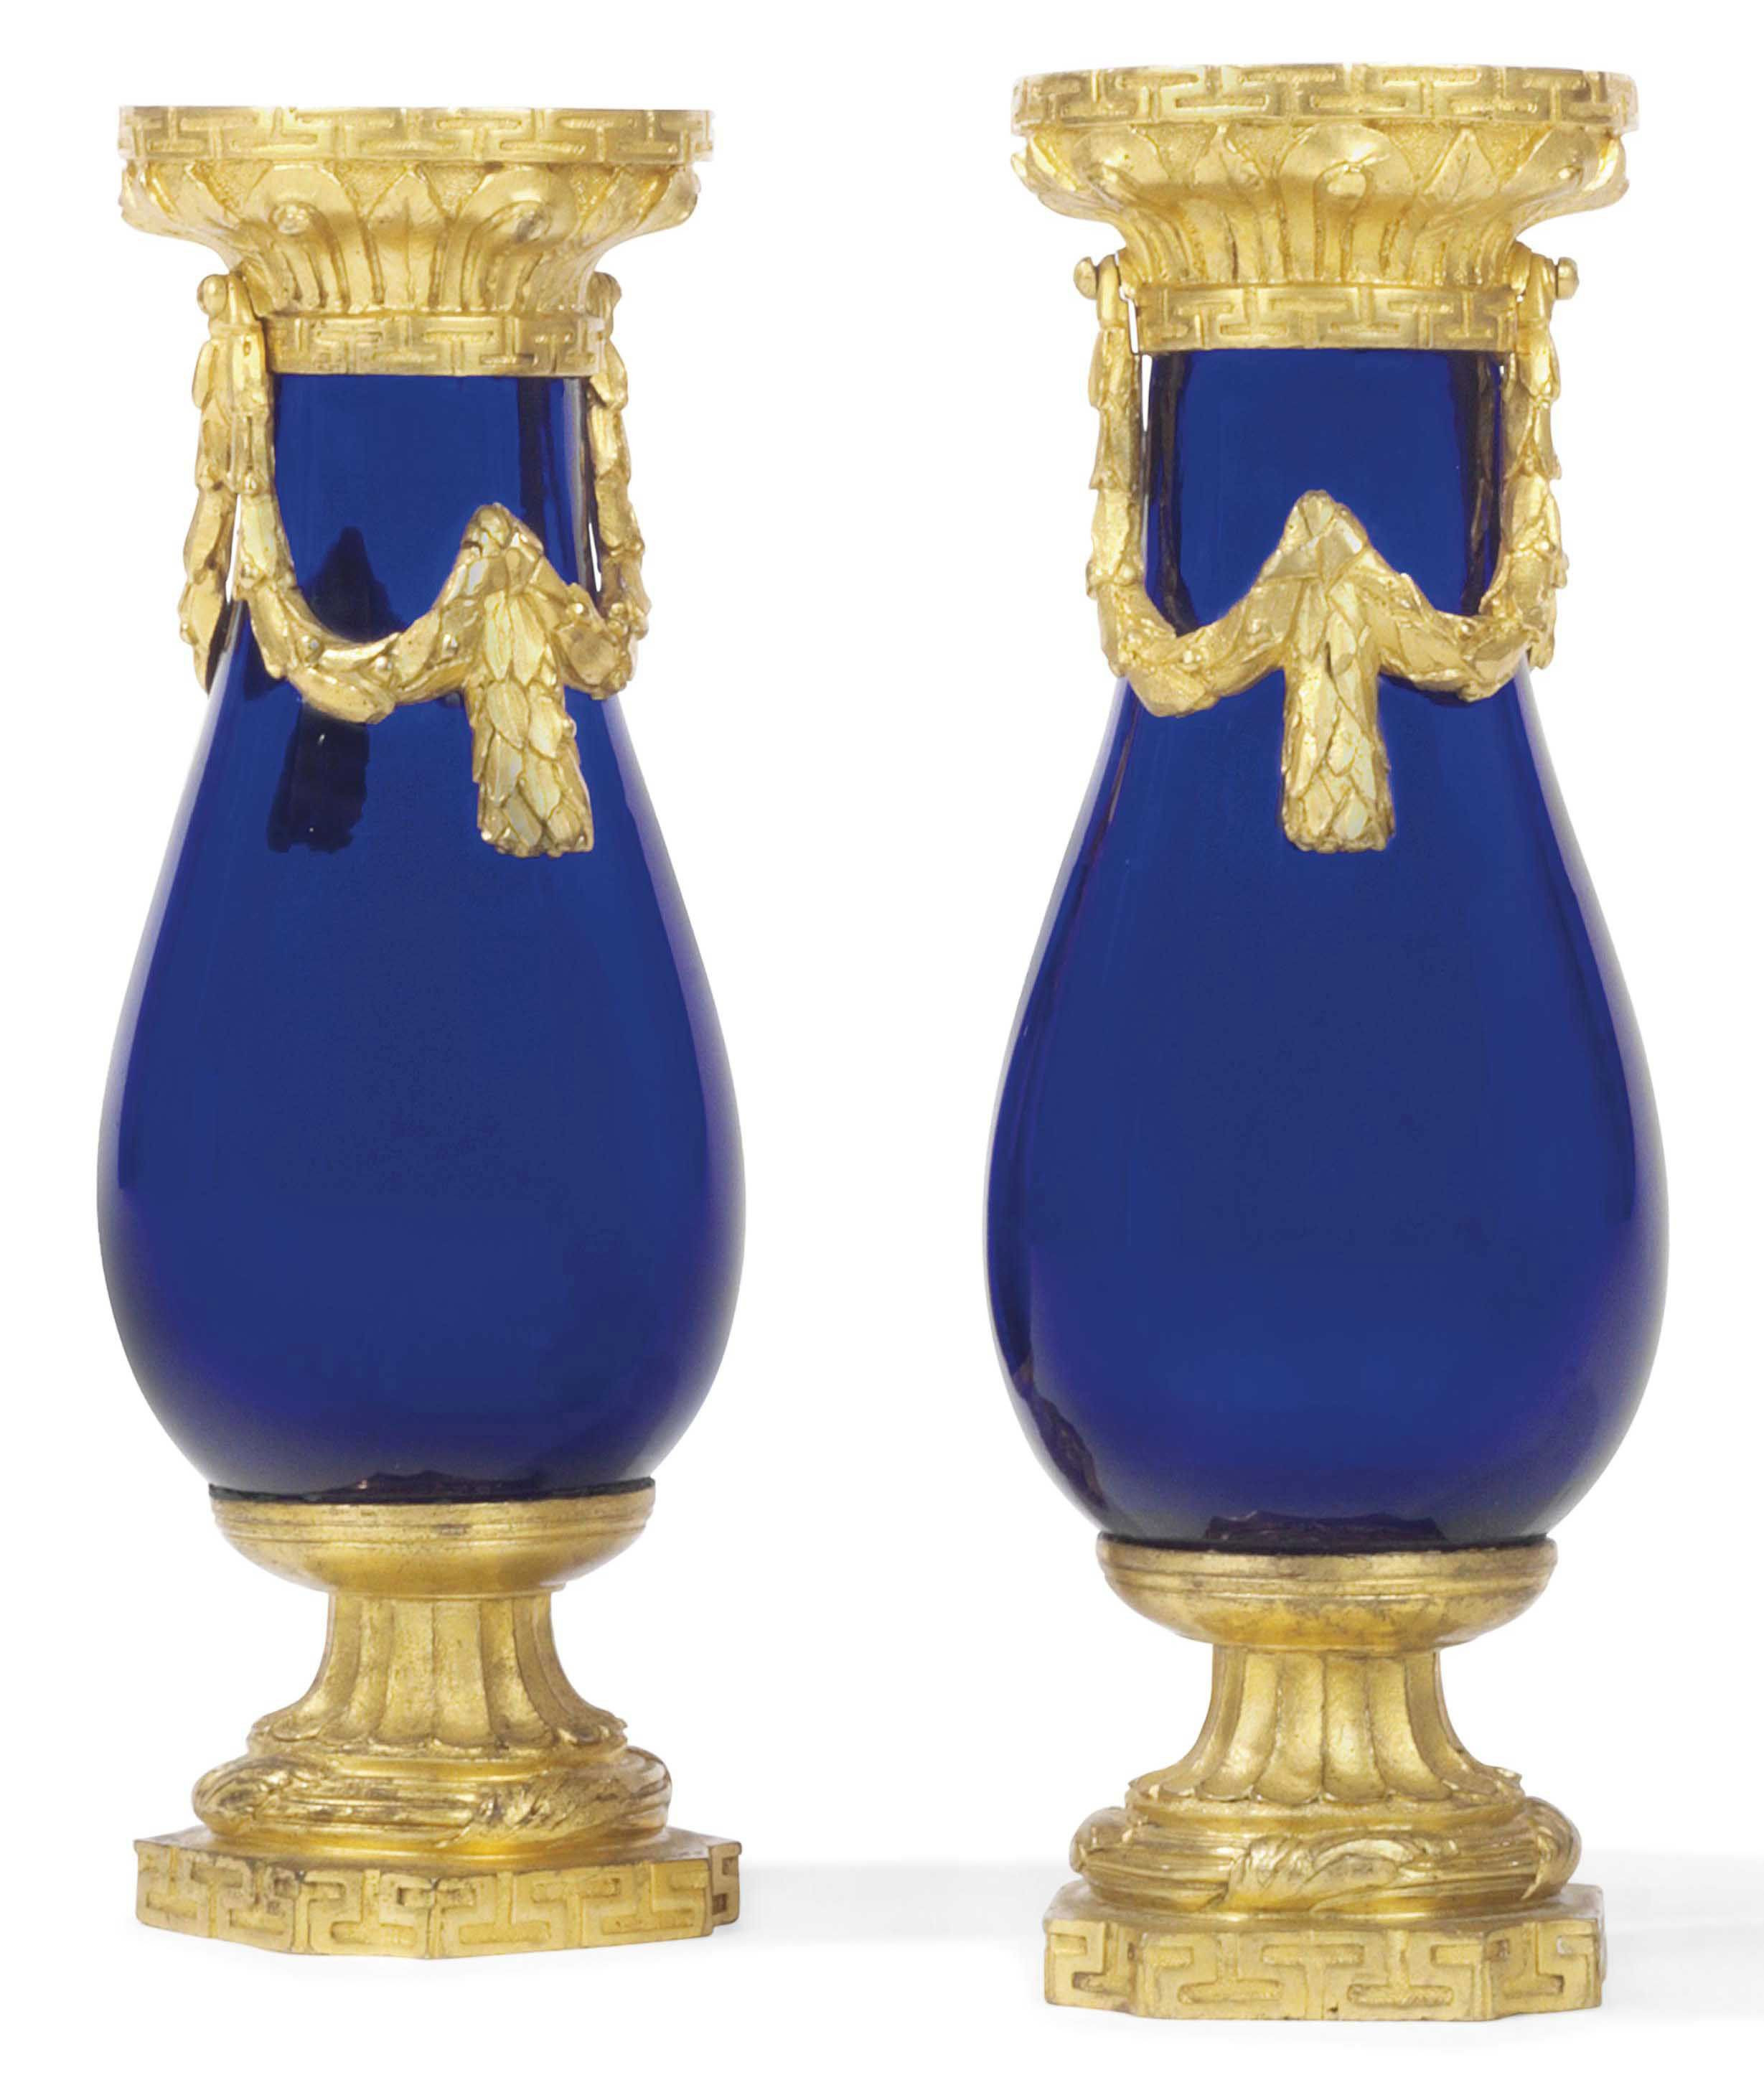 cobalt blue square vases of a pair of louis xvi ormolu and blue glass vases circa 1775 urns intended for a pair of louis xvi ormolu and blue glass vases circa 1775